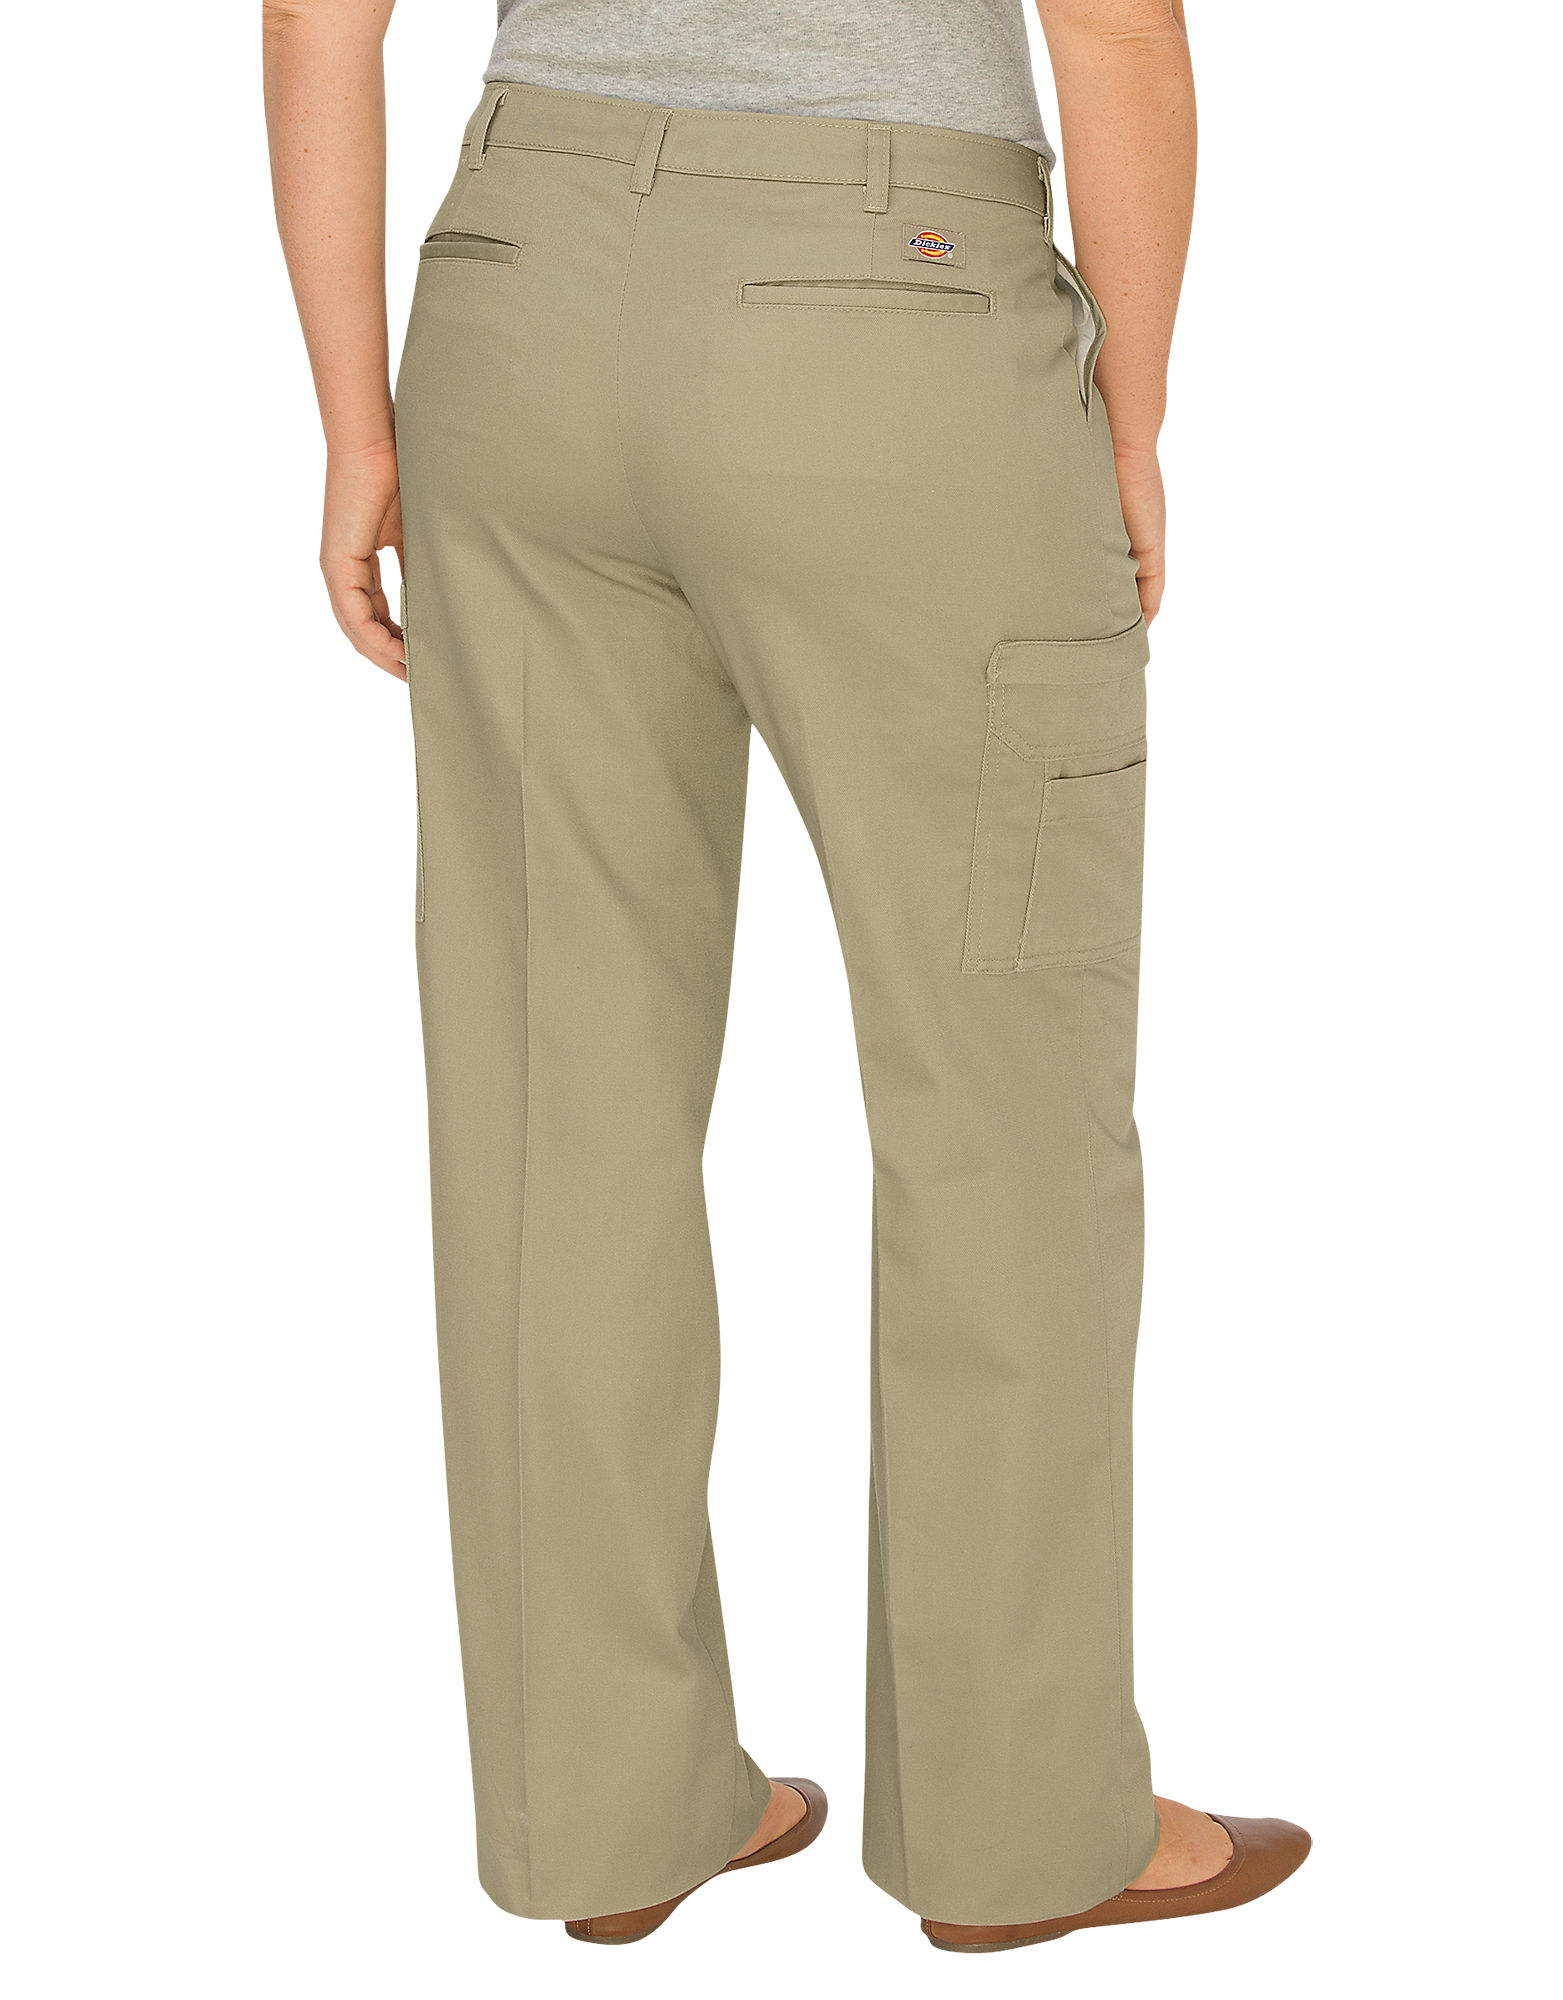 18w women s cargo pants photo - 2